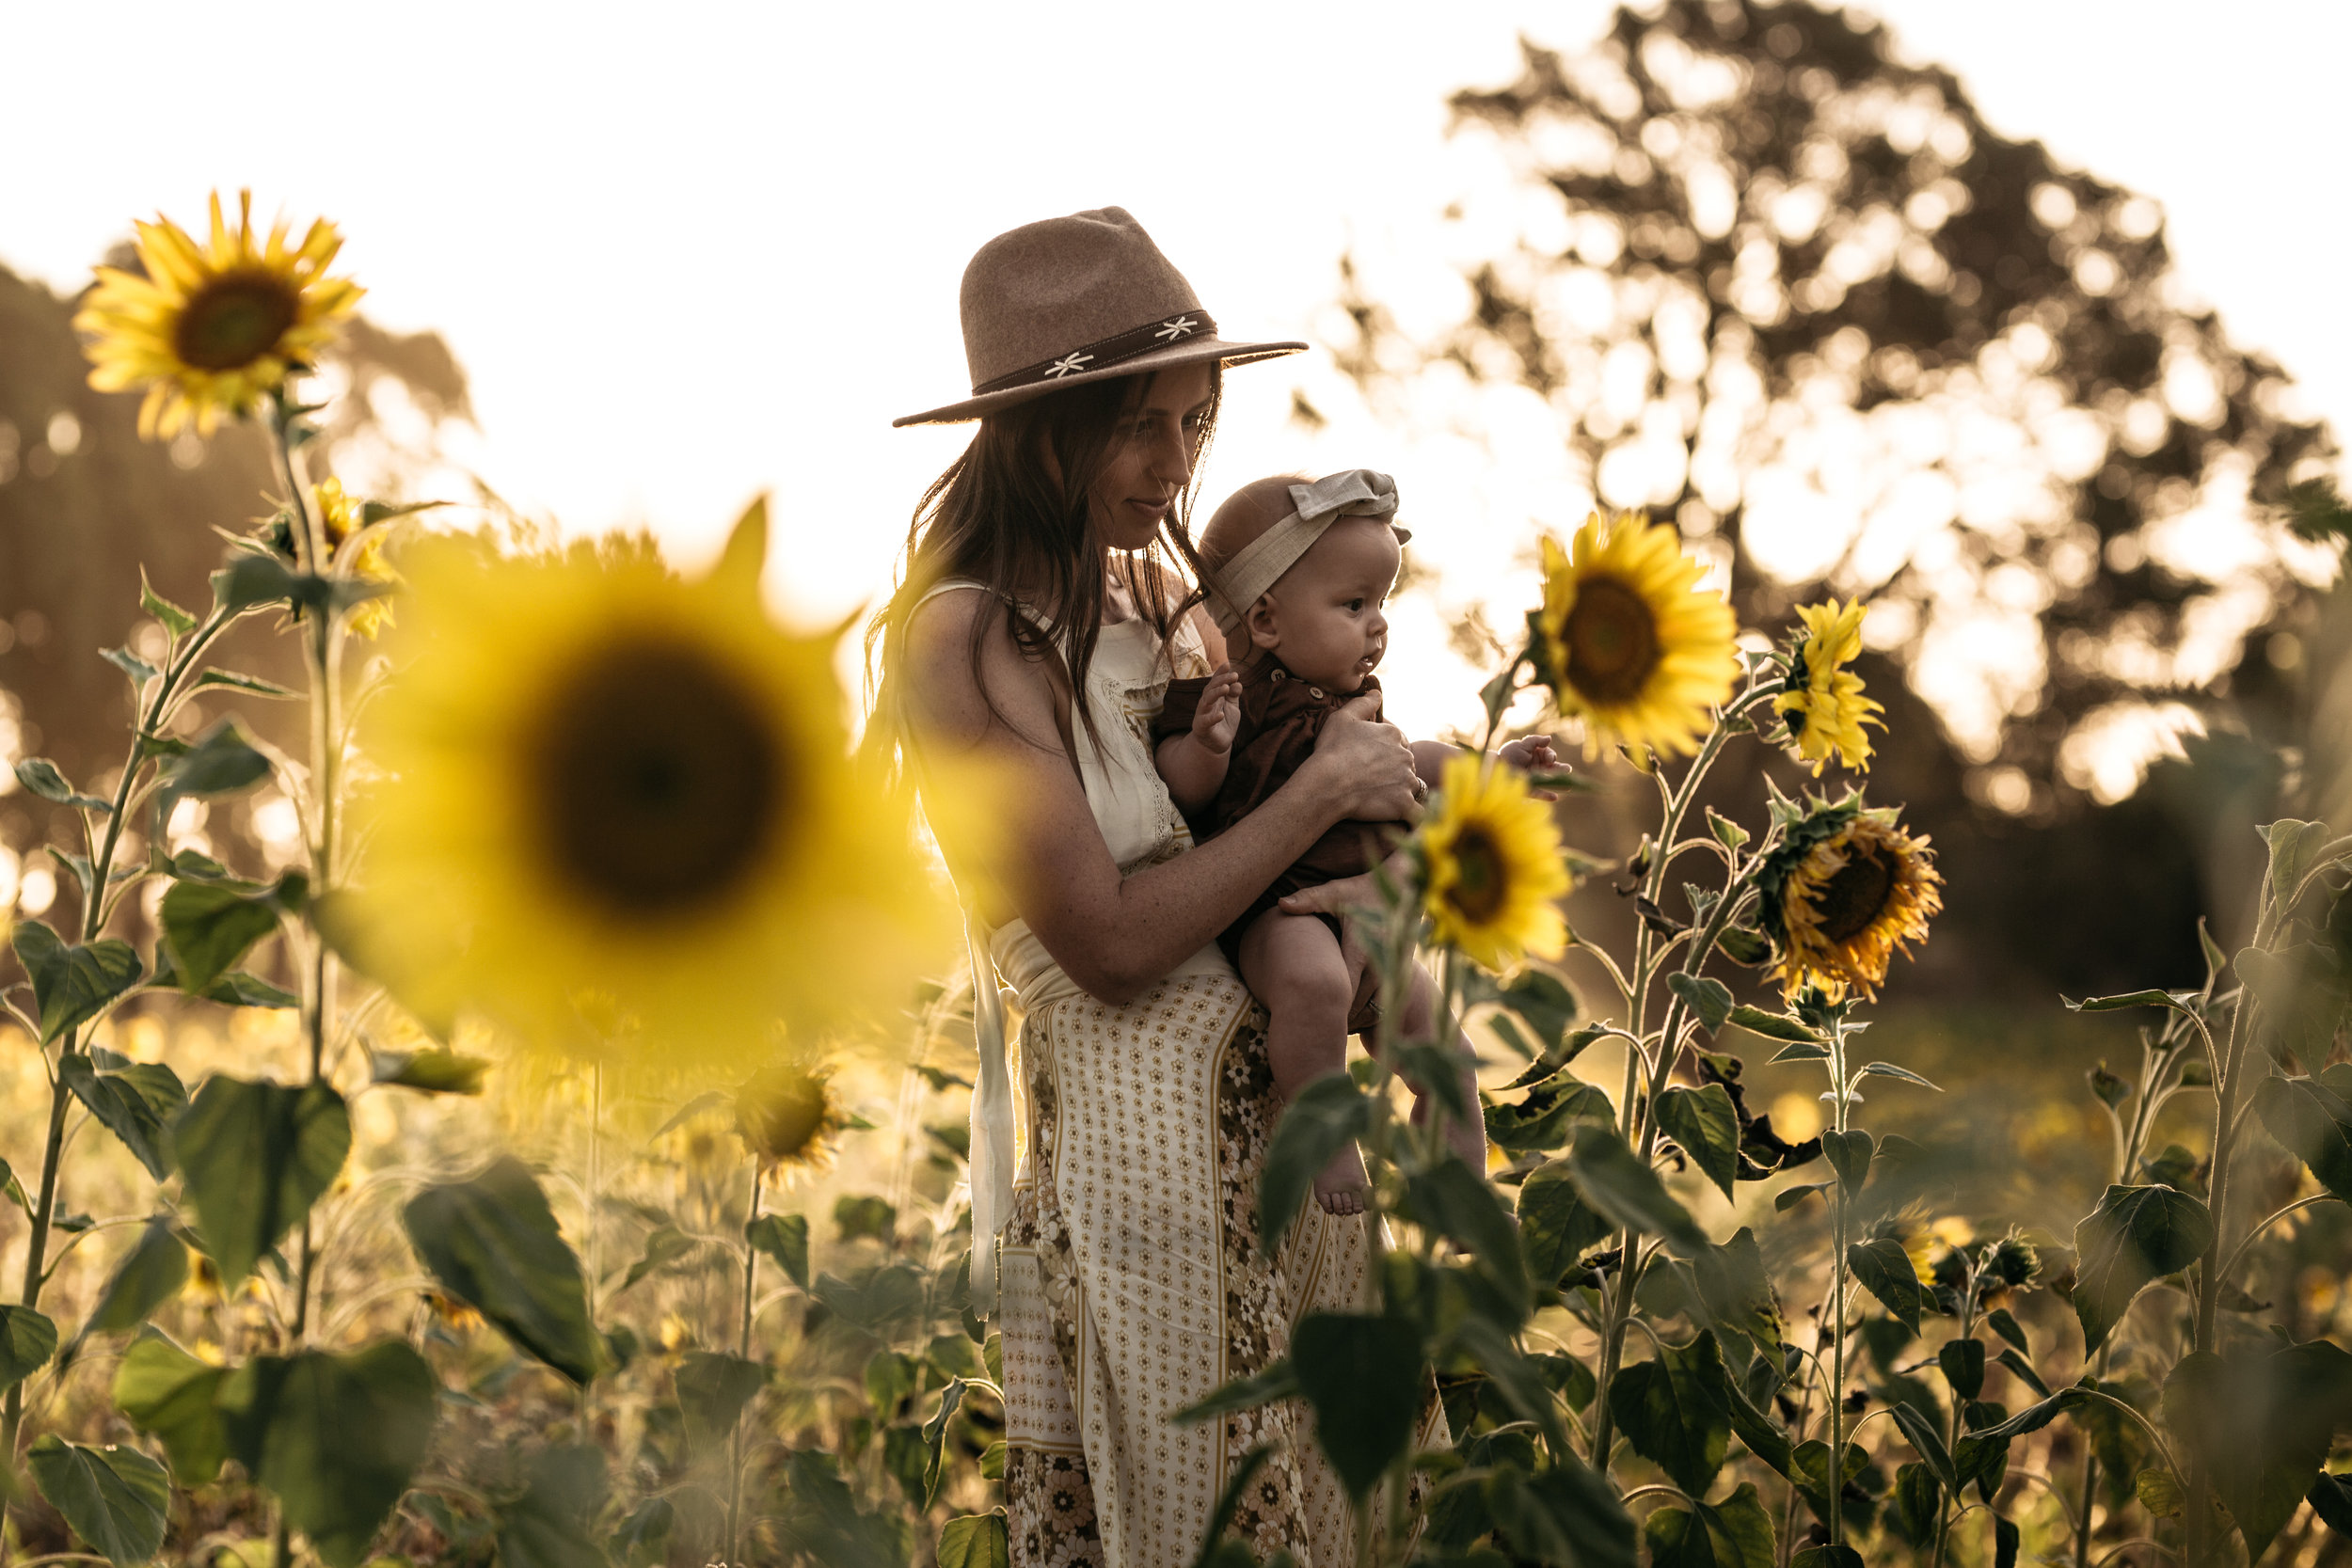 Elkie_Sunflowers2019_KHPhoto-14.JPG